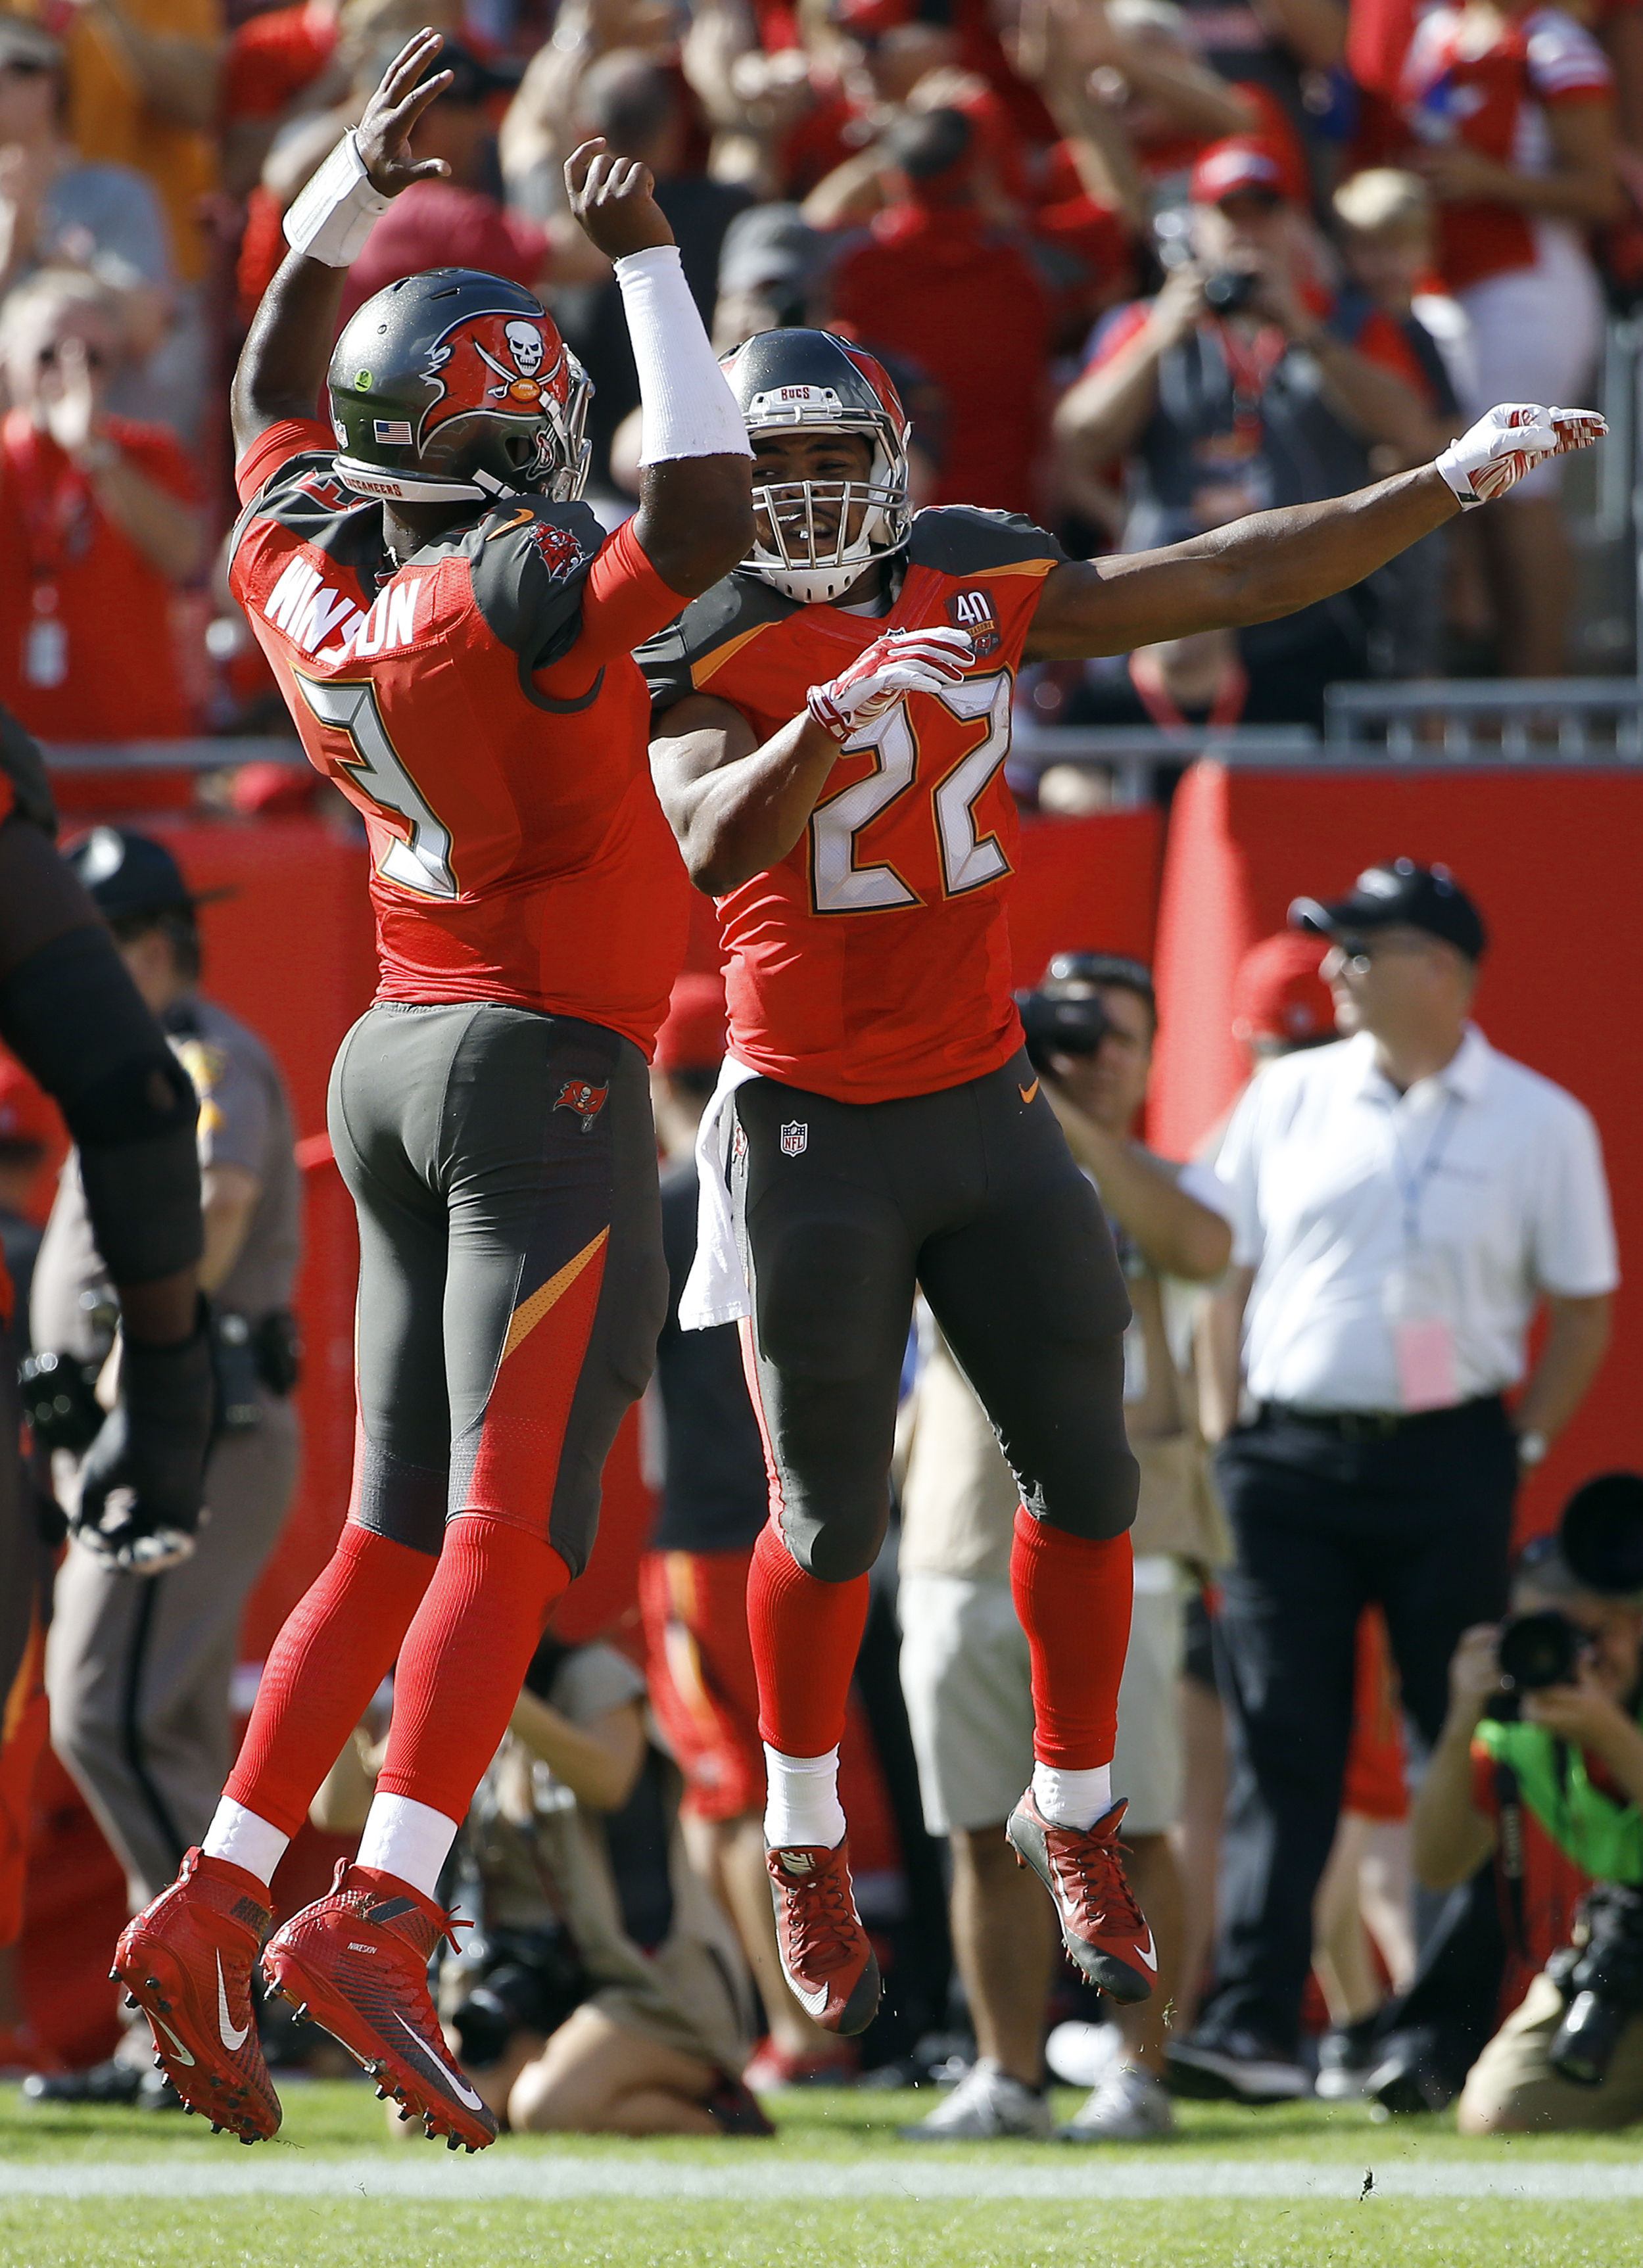 Tampa Bay Buccaneers running back Doug Martin (22) celebrates with quarterback Jameis Winston (3) after Martin's 14-yard touchdown run against the New Orleans Saints during the second quarter of an NFL football game Sunday, Dec. 13, 2015, in Tampa, Fla. (